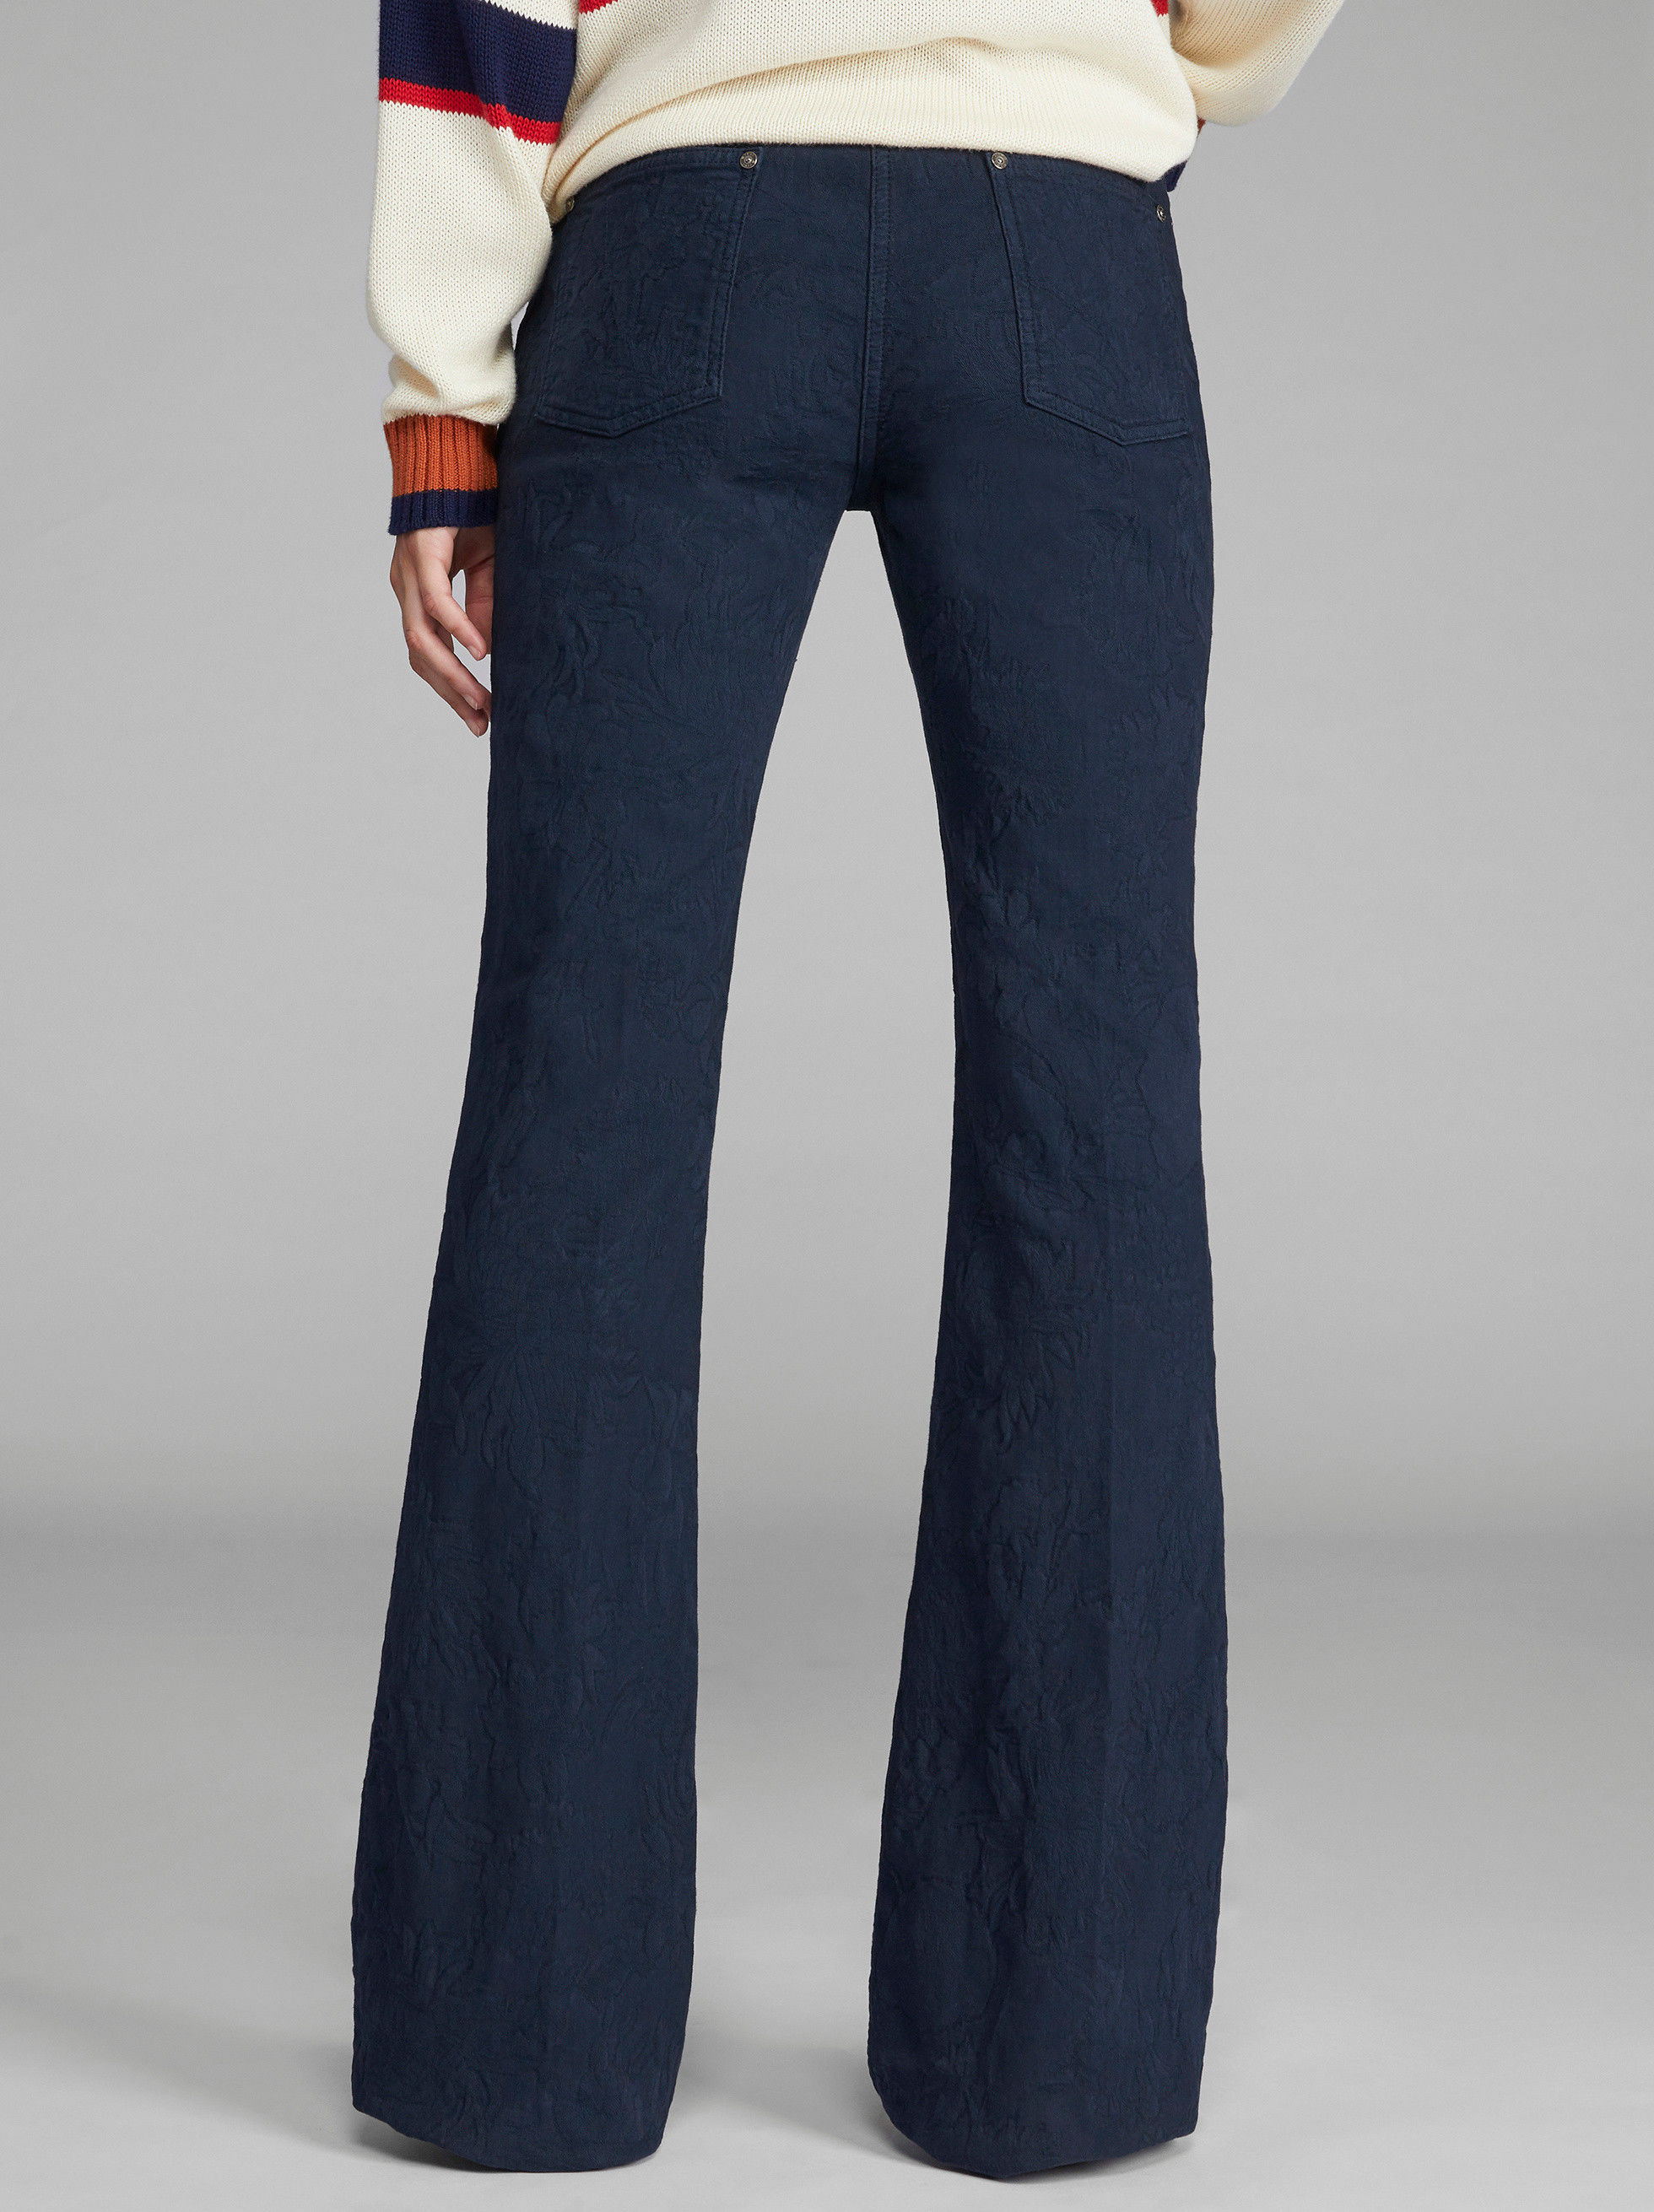 FLARED JACQUARD JEANS